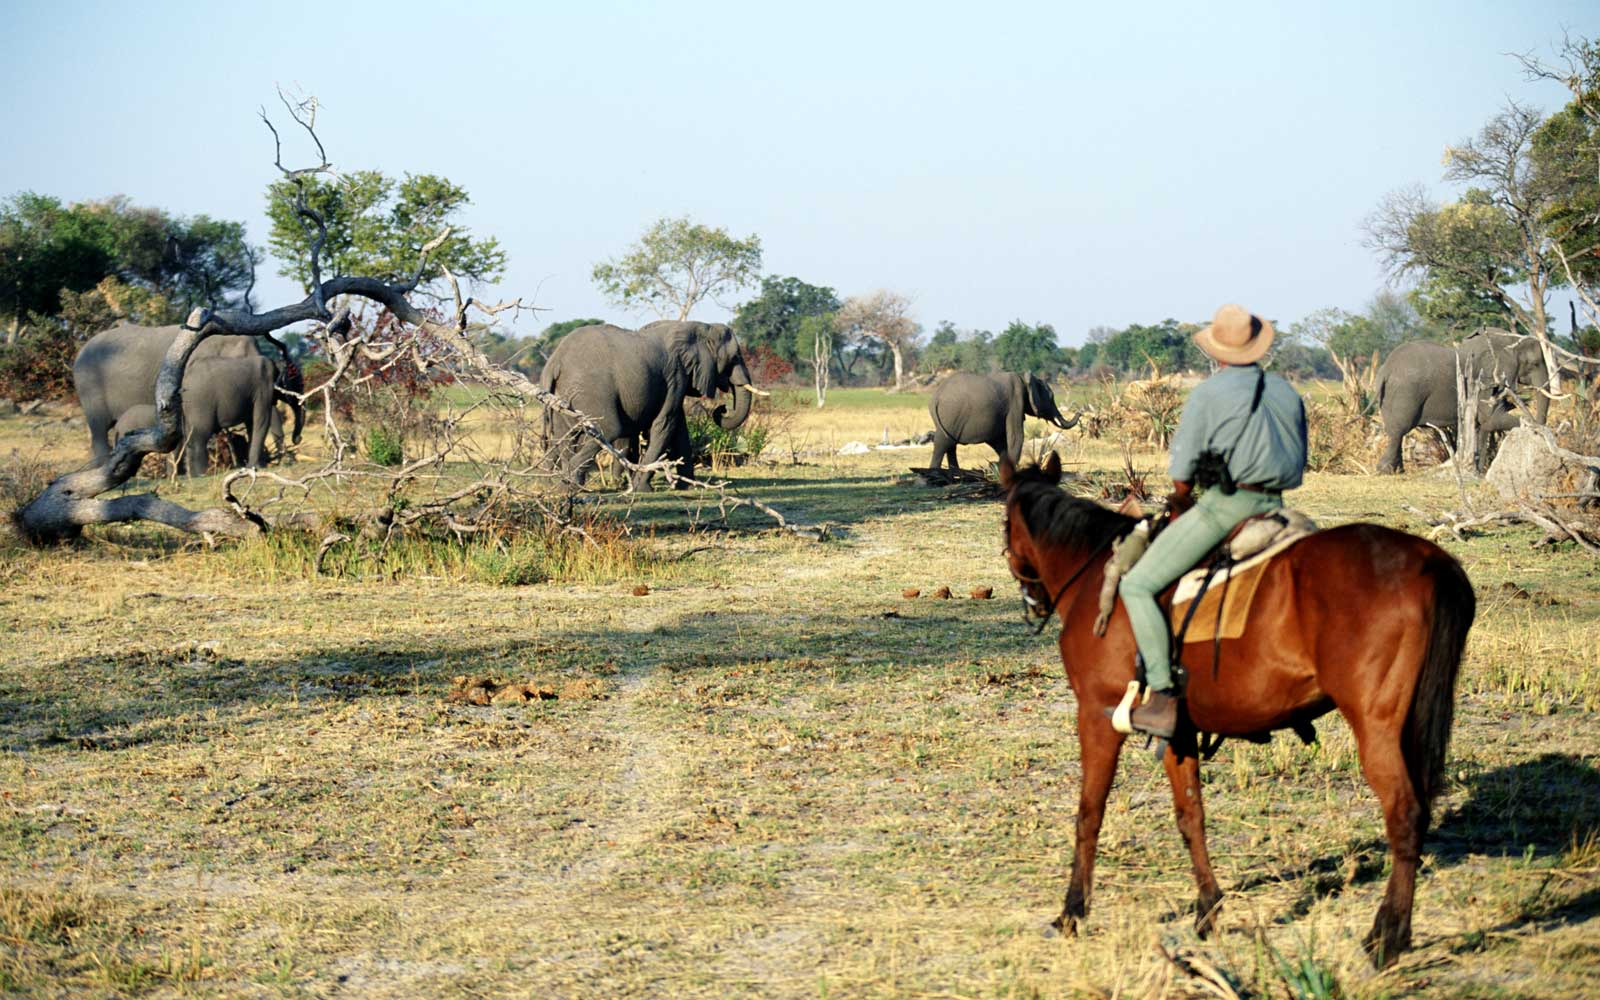 Go on a Horseback Riding Safari in Botswana